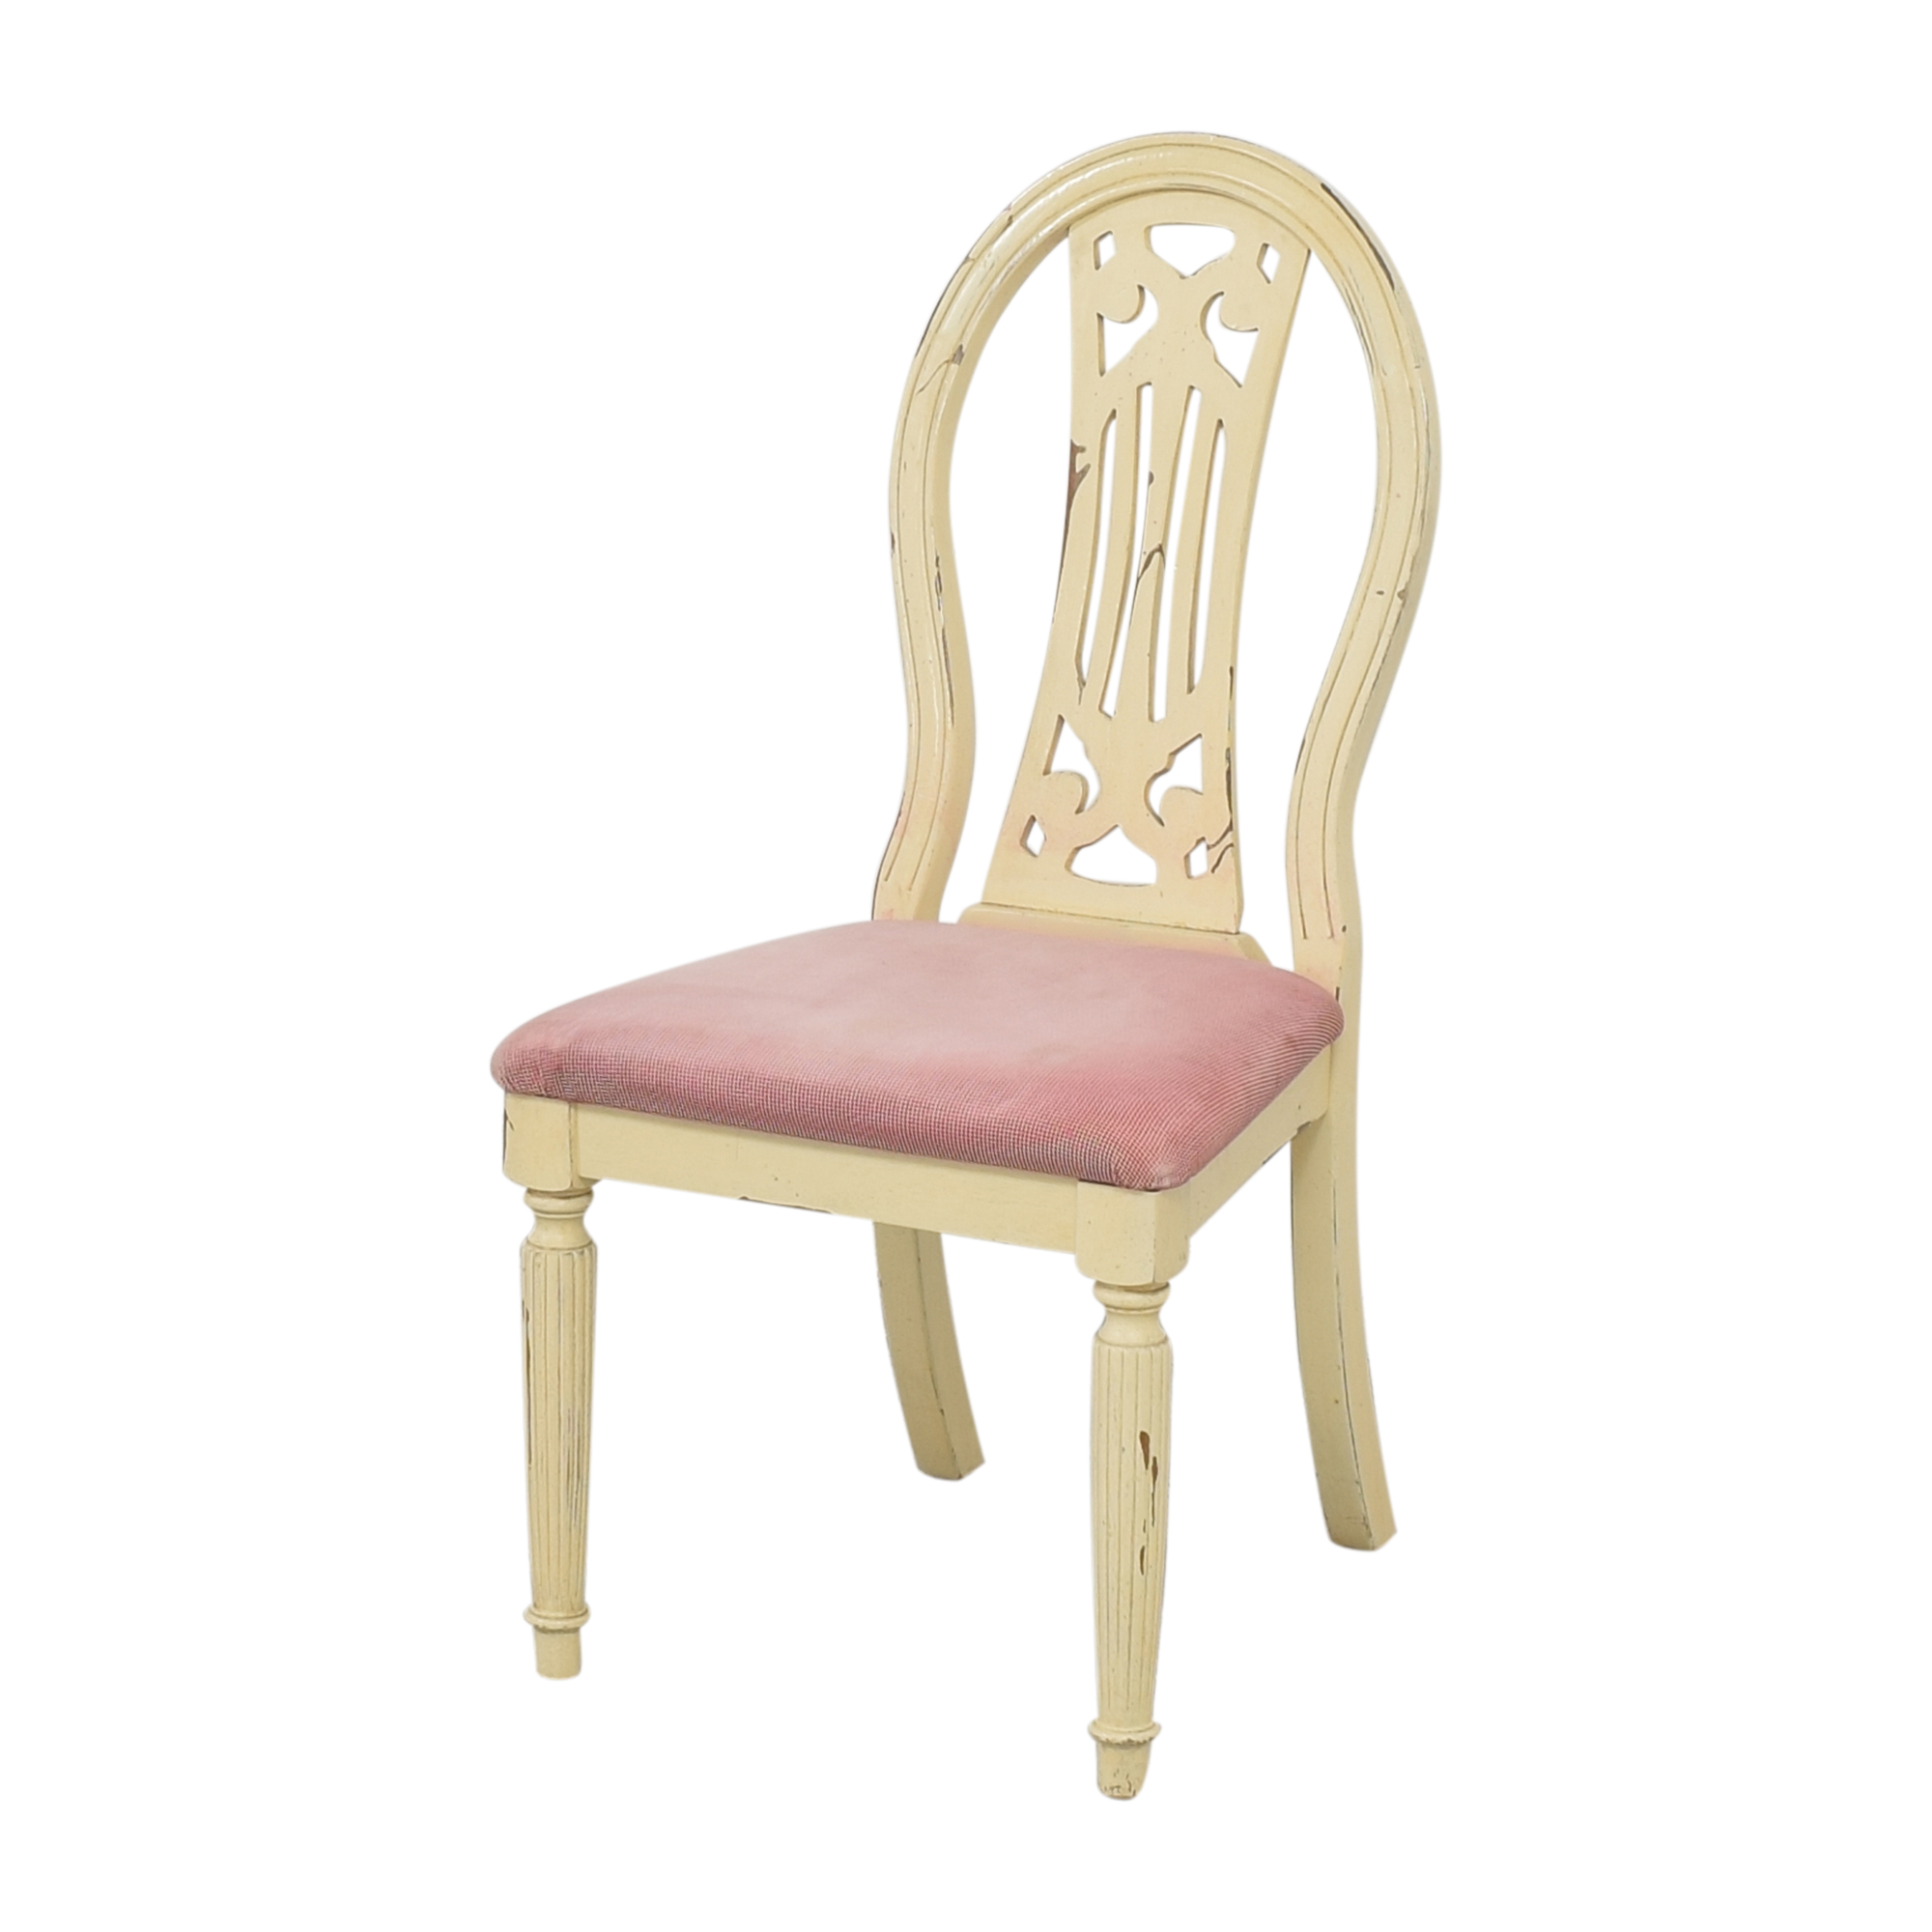 Rustic Upholstered Seat Dining Chairs cream and red